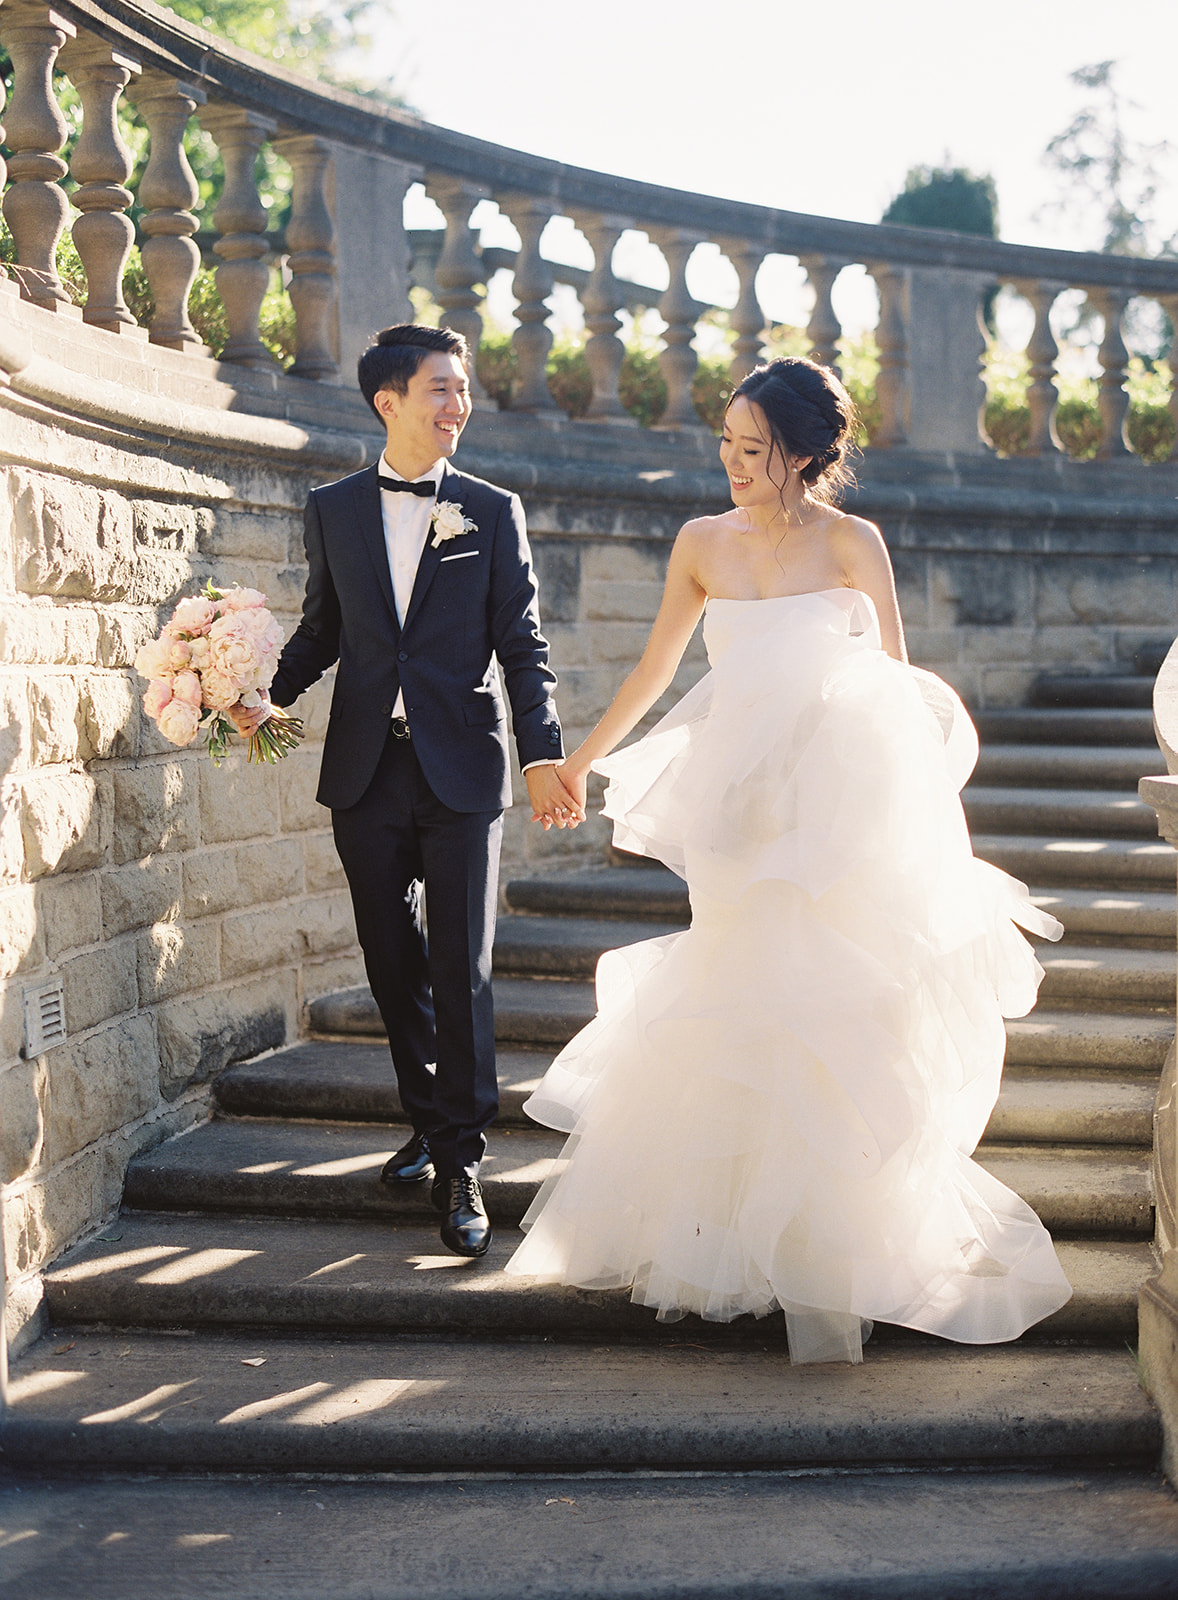 Bride and Groom walking down cement outside staircase